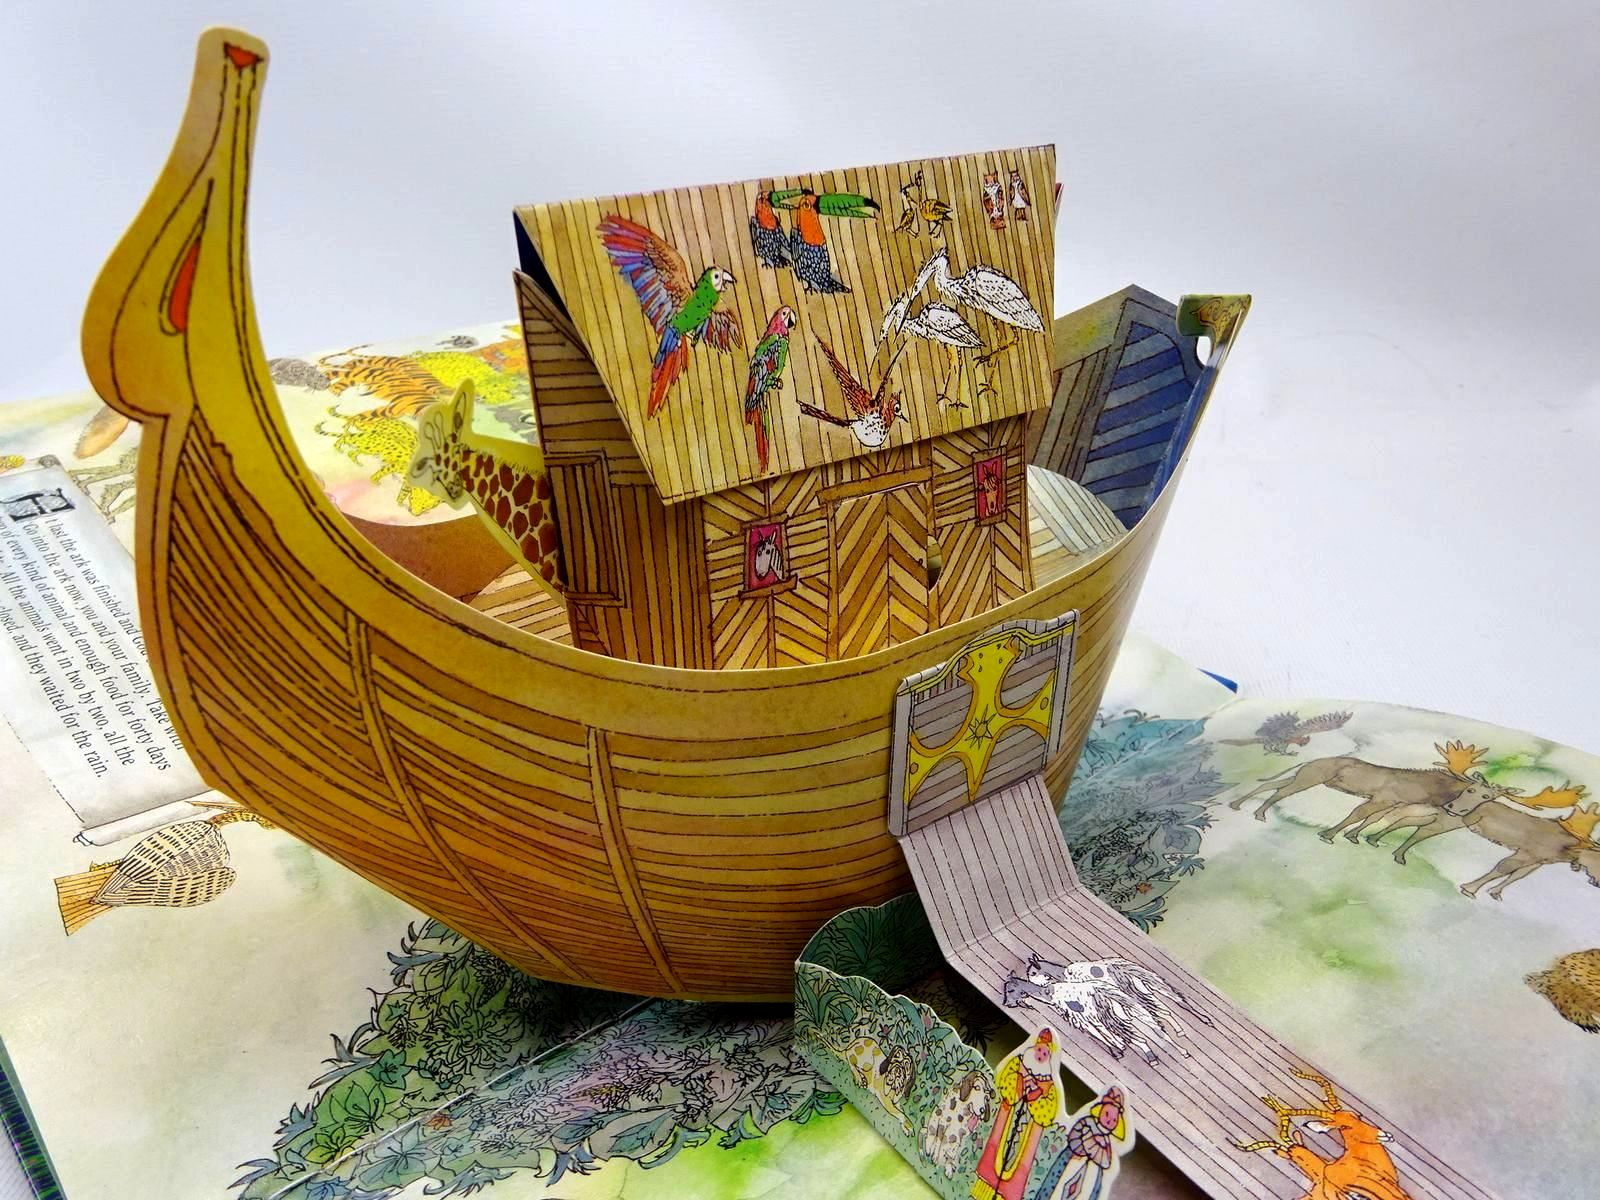 Photo of NOAH'S ARK THE POP-UP BOOK written by Wildsmith, Brian illustrated by Wildsmith, Brian published by Oxford University Press (STOCK CODE: 2126642)  for sale by Stella & Rose's Books